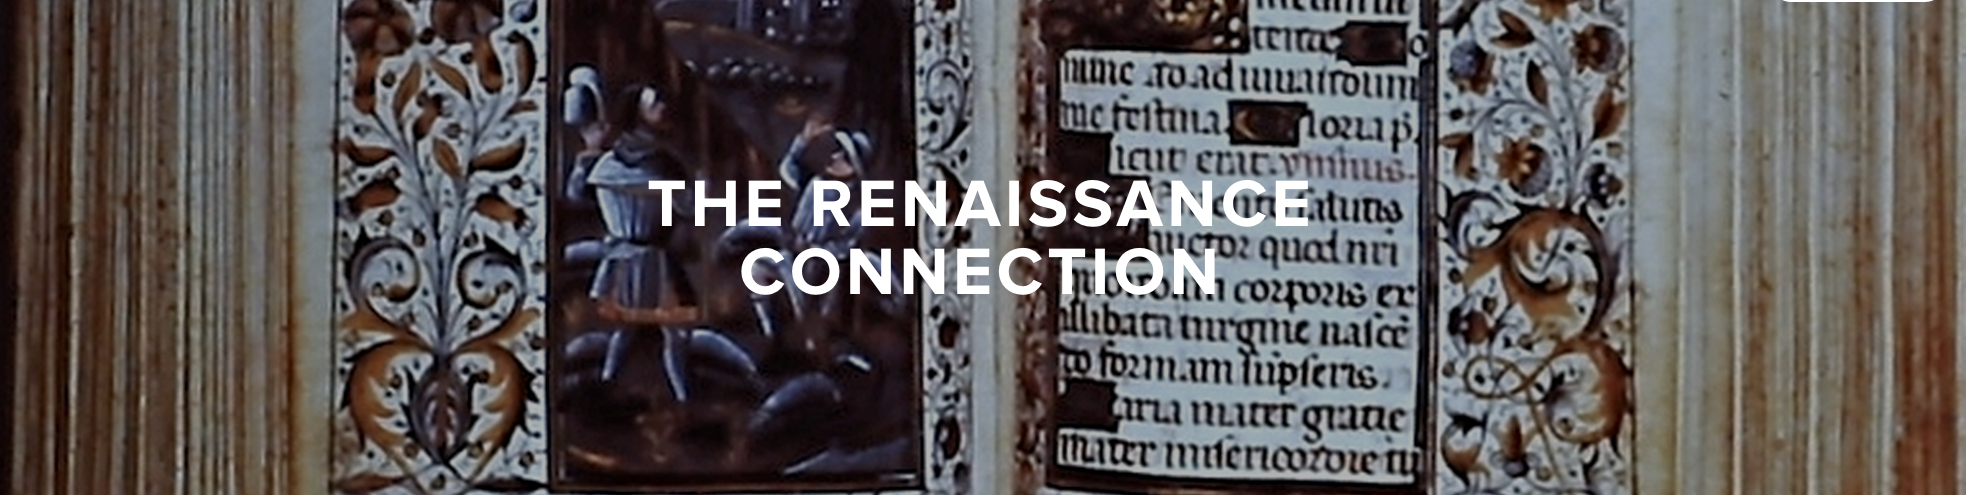 Renaissance Connection